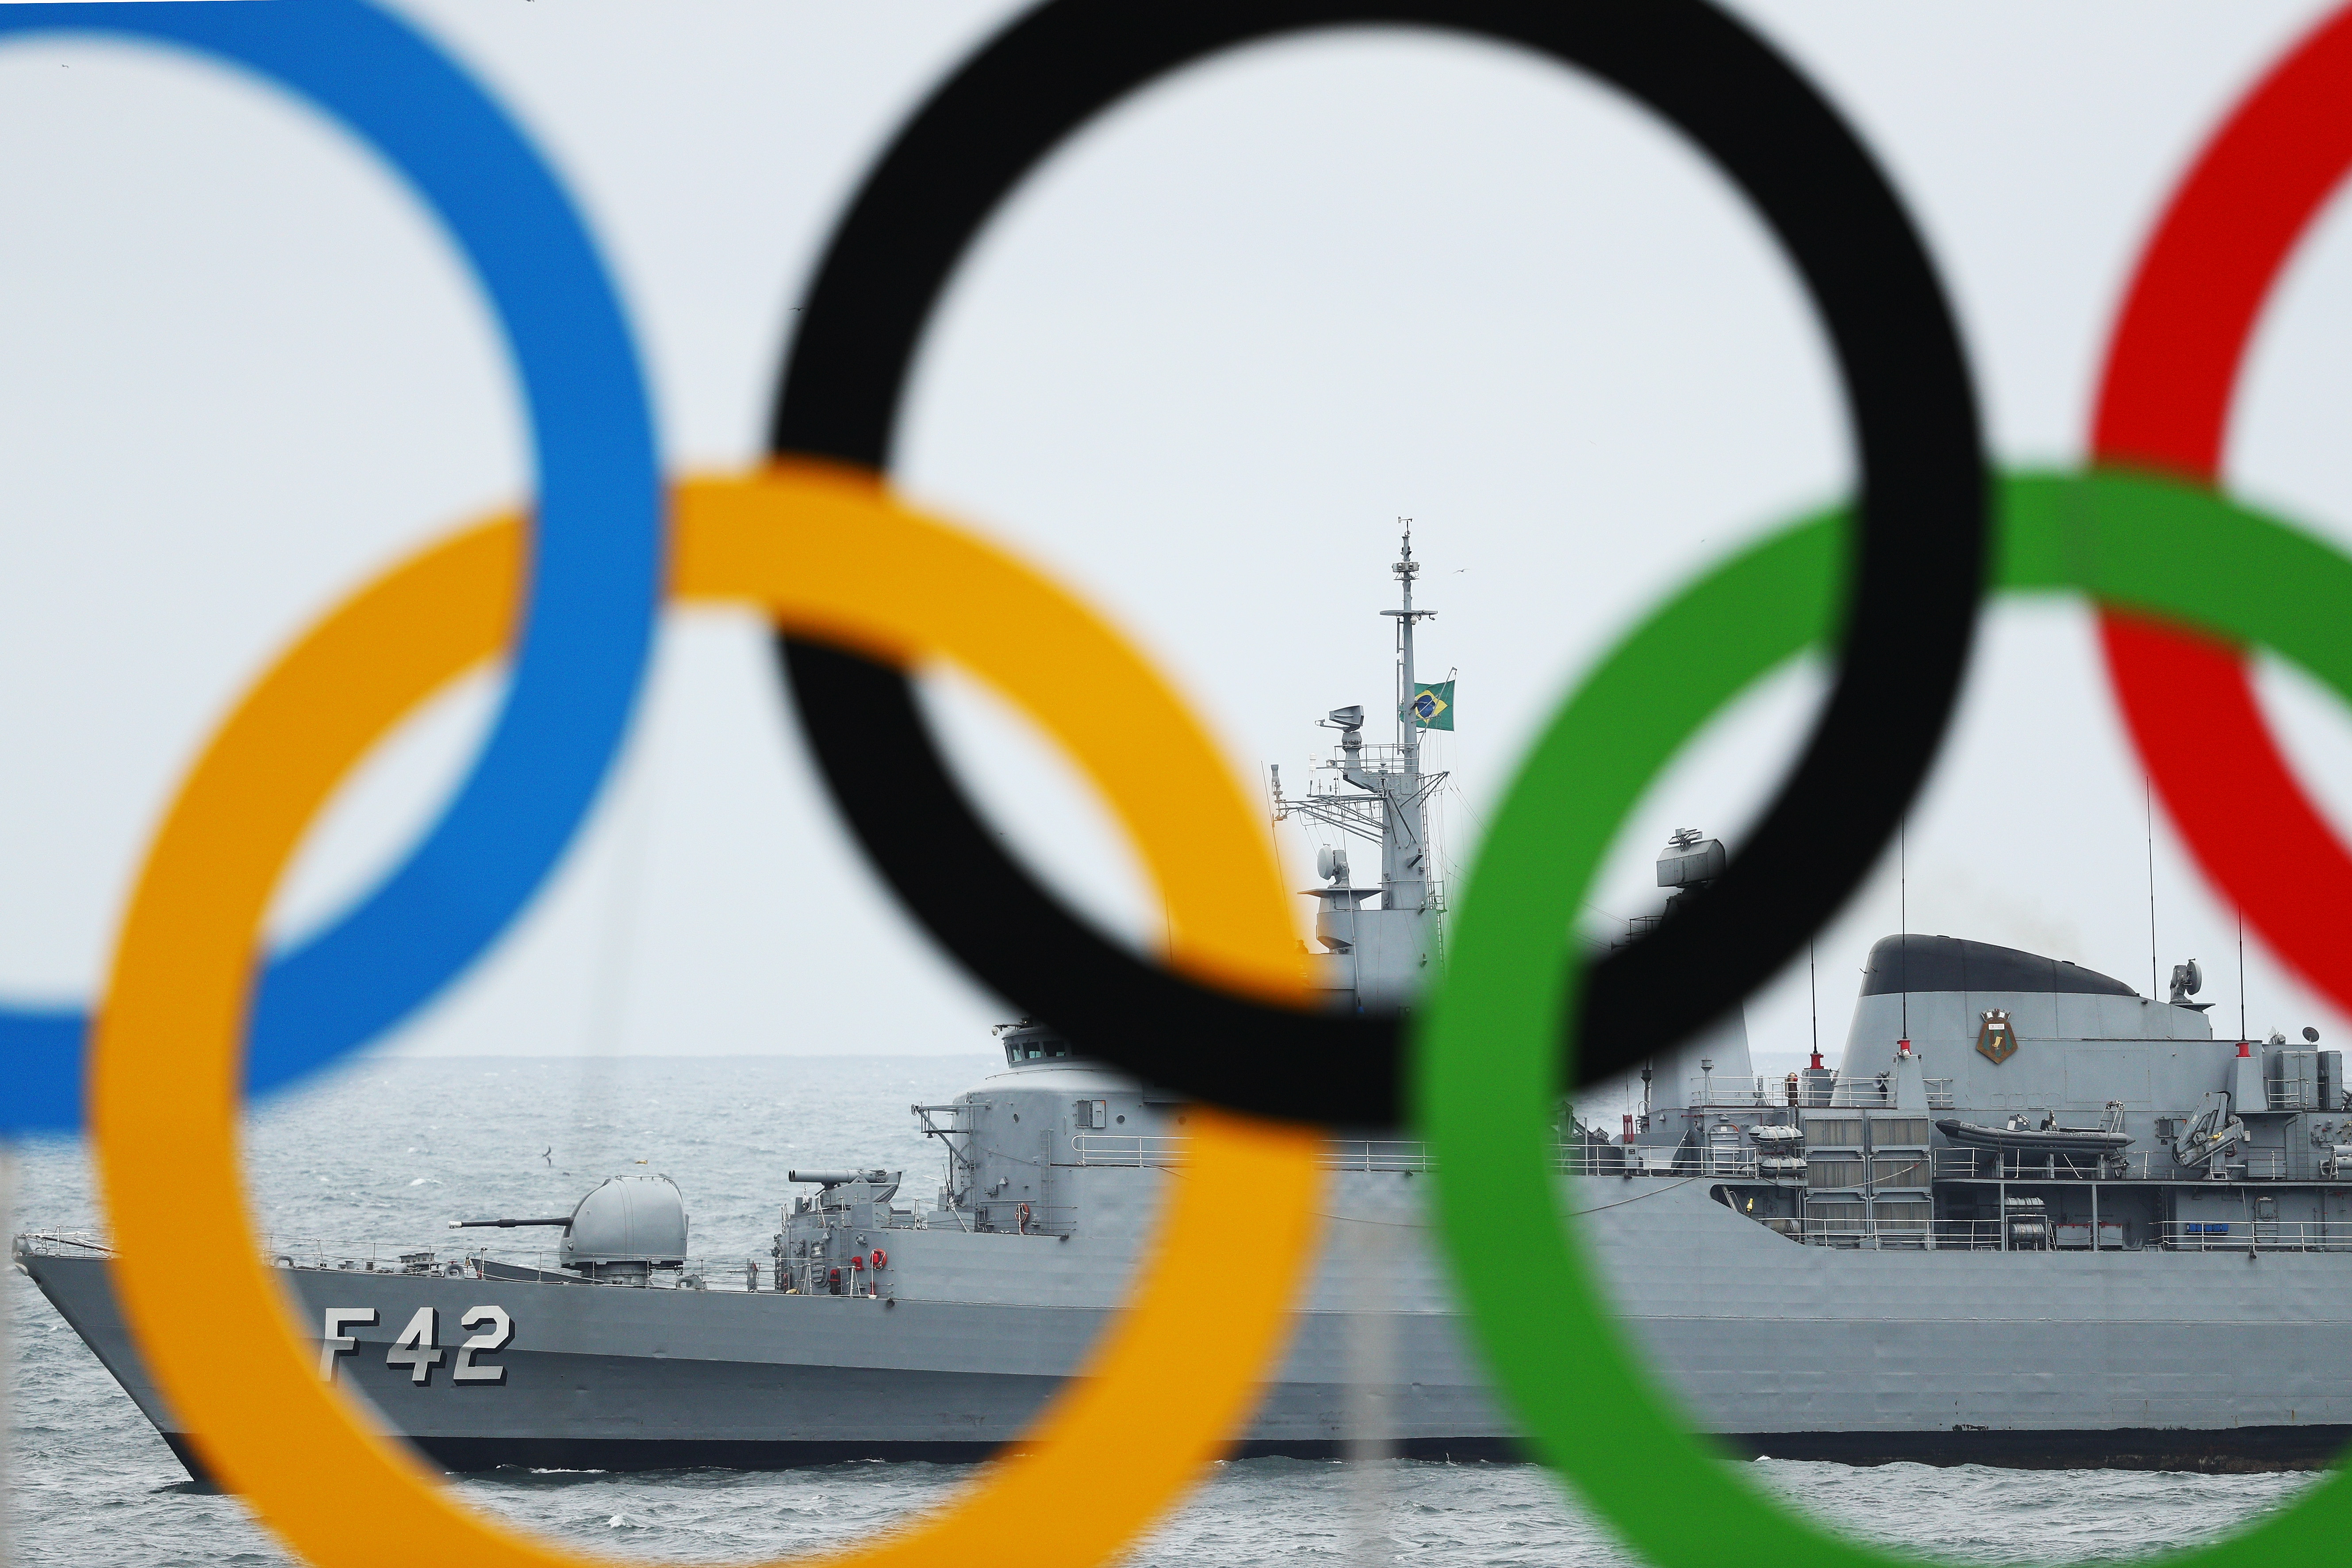 What do the olympic rings represent the rio games are all about paul gilhamgetty images sportgetty images buycottarizona